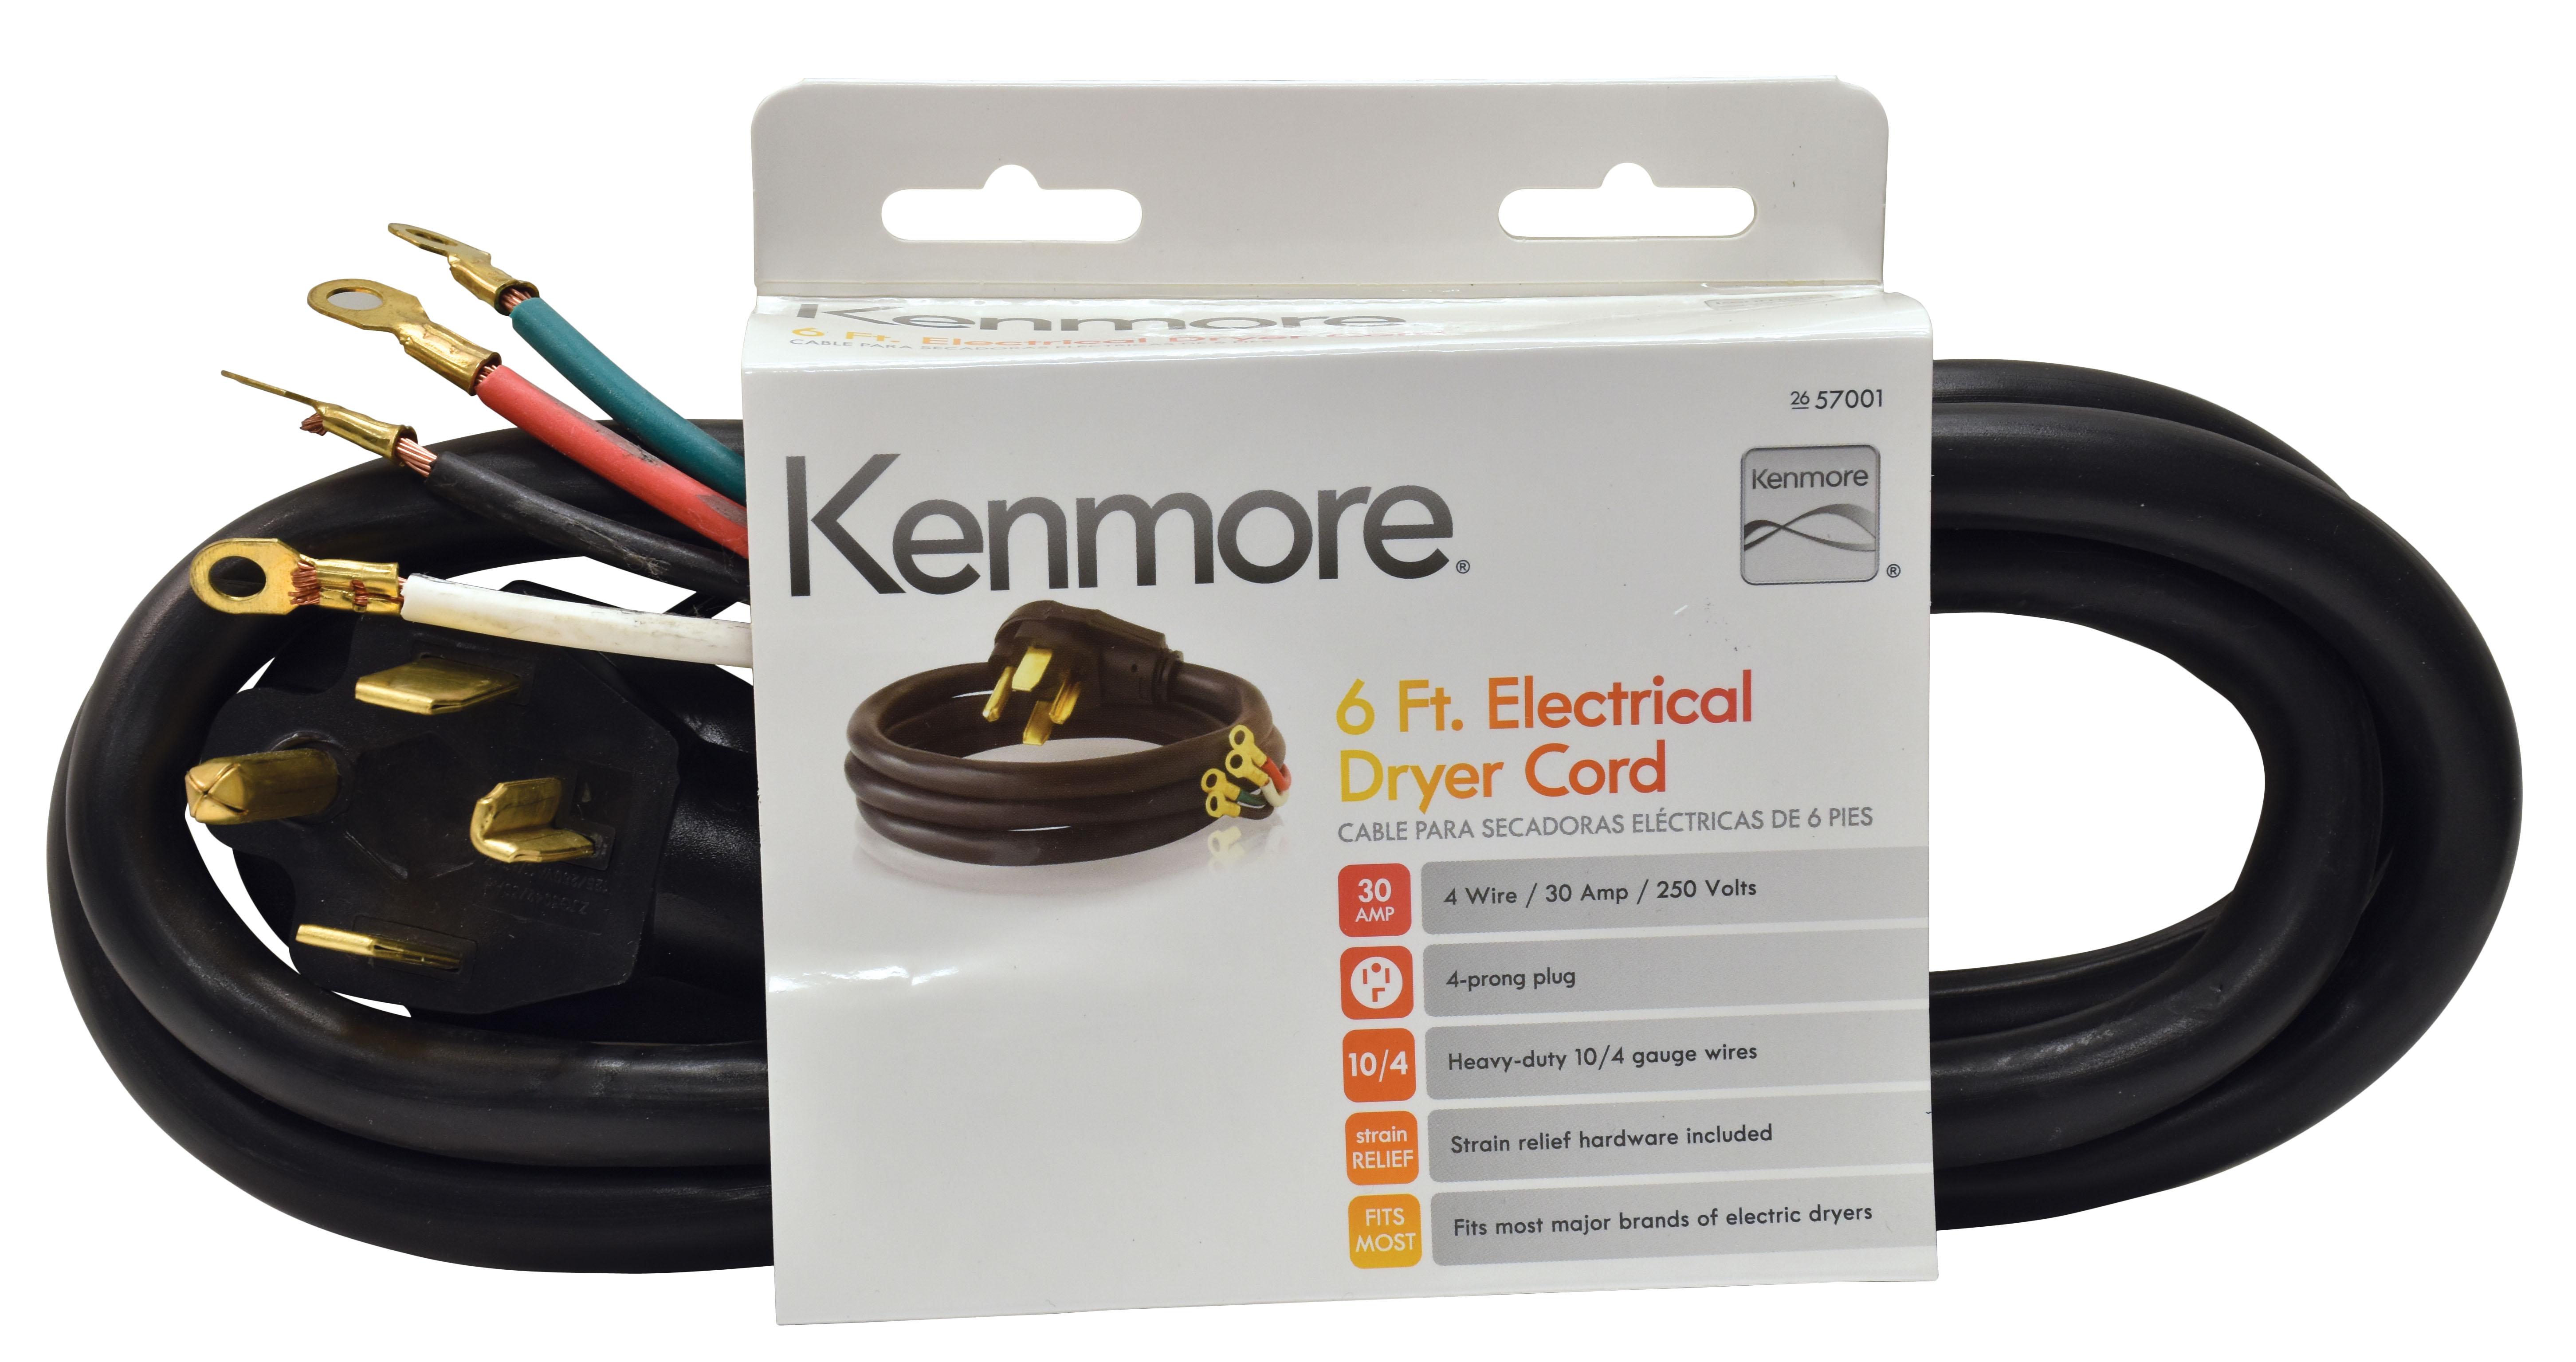 kenmore 99921 57001 4 prong 6 round dryer cord black rh sears com Kenmore 110 Dryer Schematic Model 110 73952101 Kenmore Electric Dryer Wiring Diagram